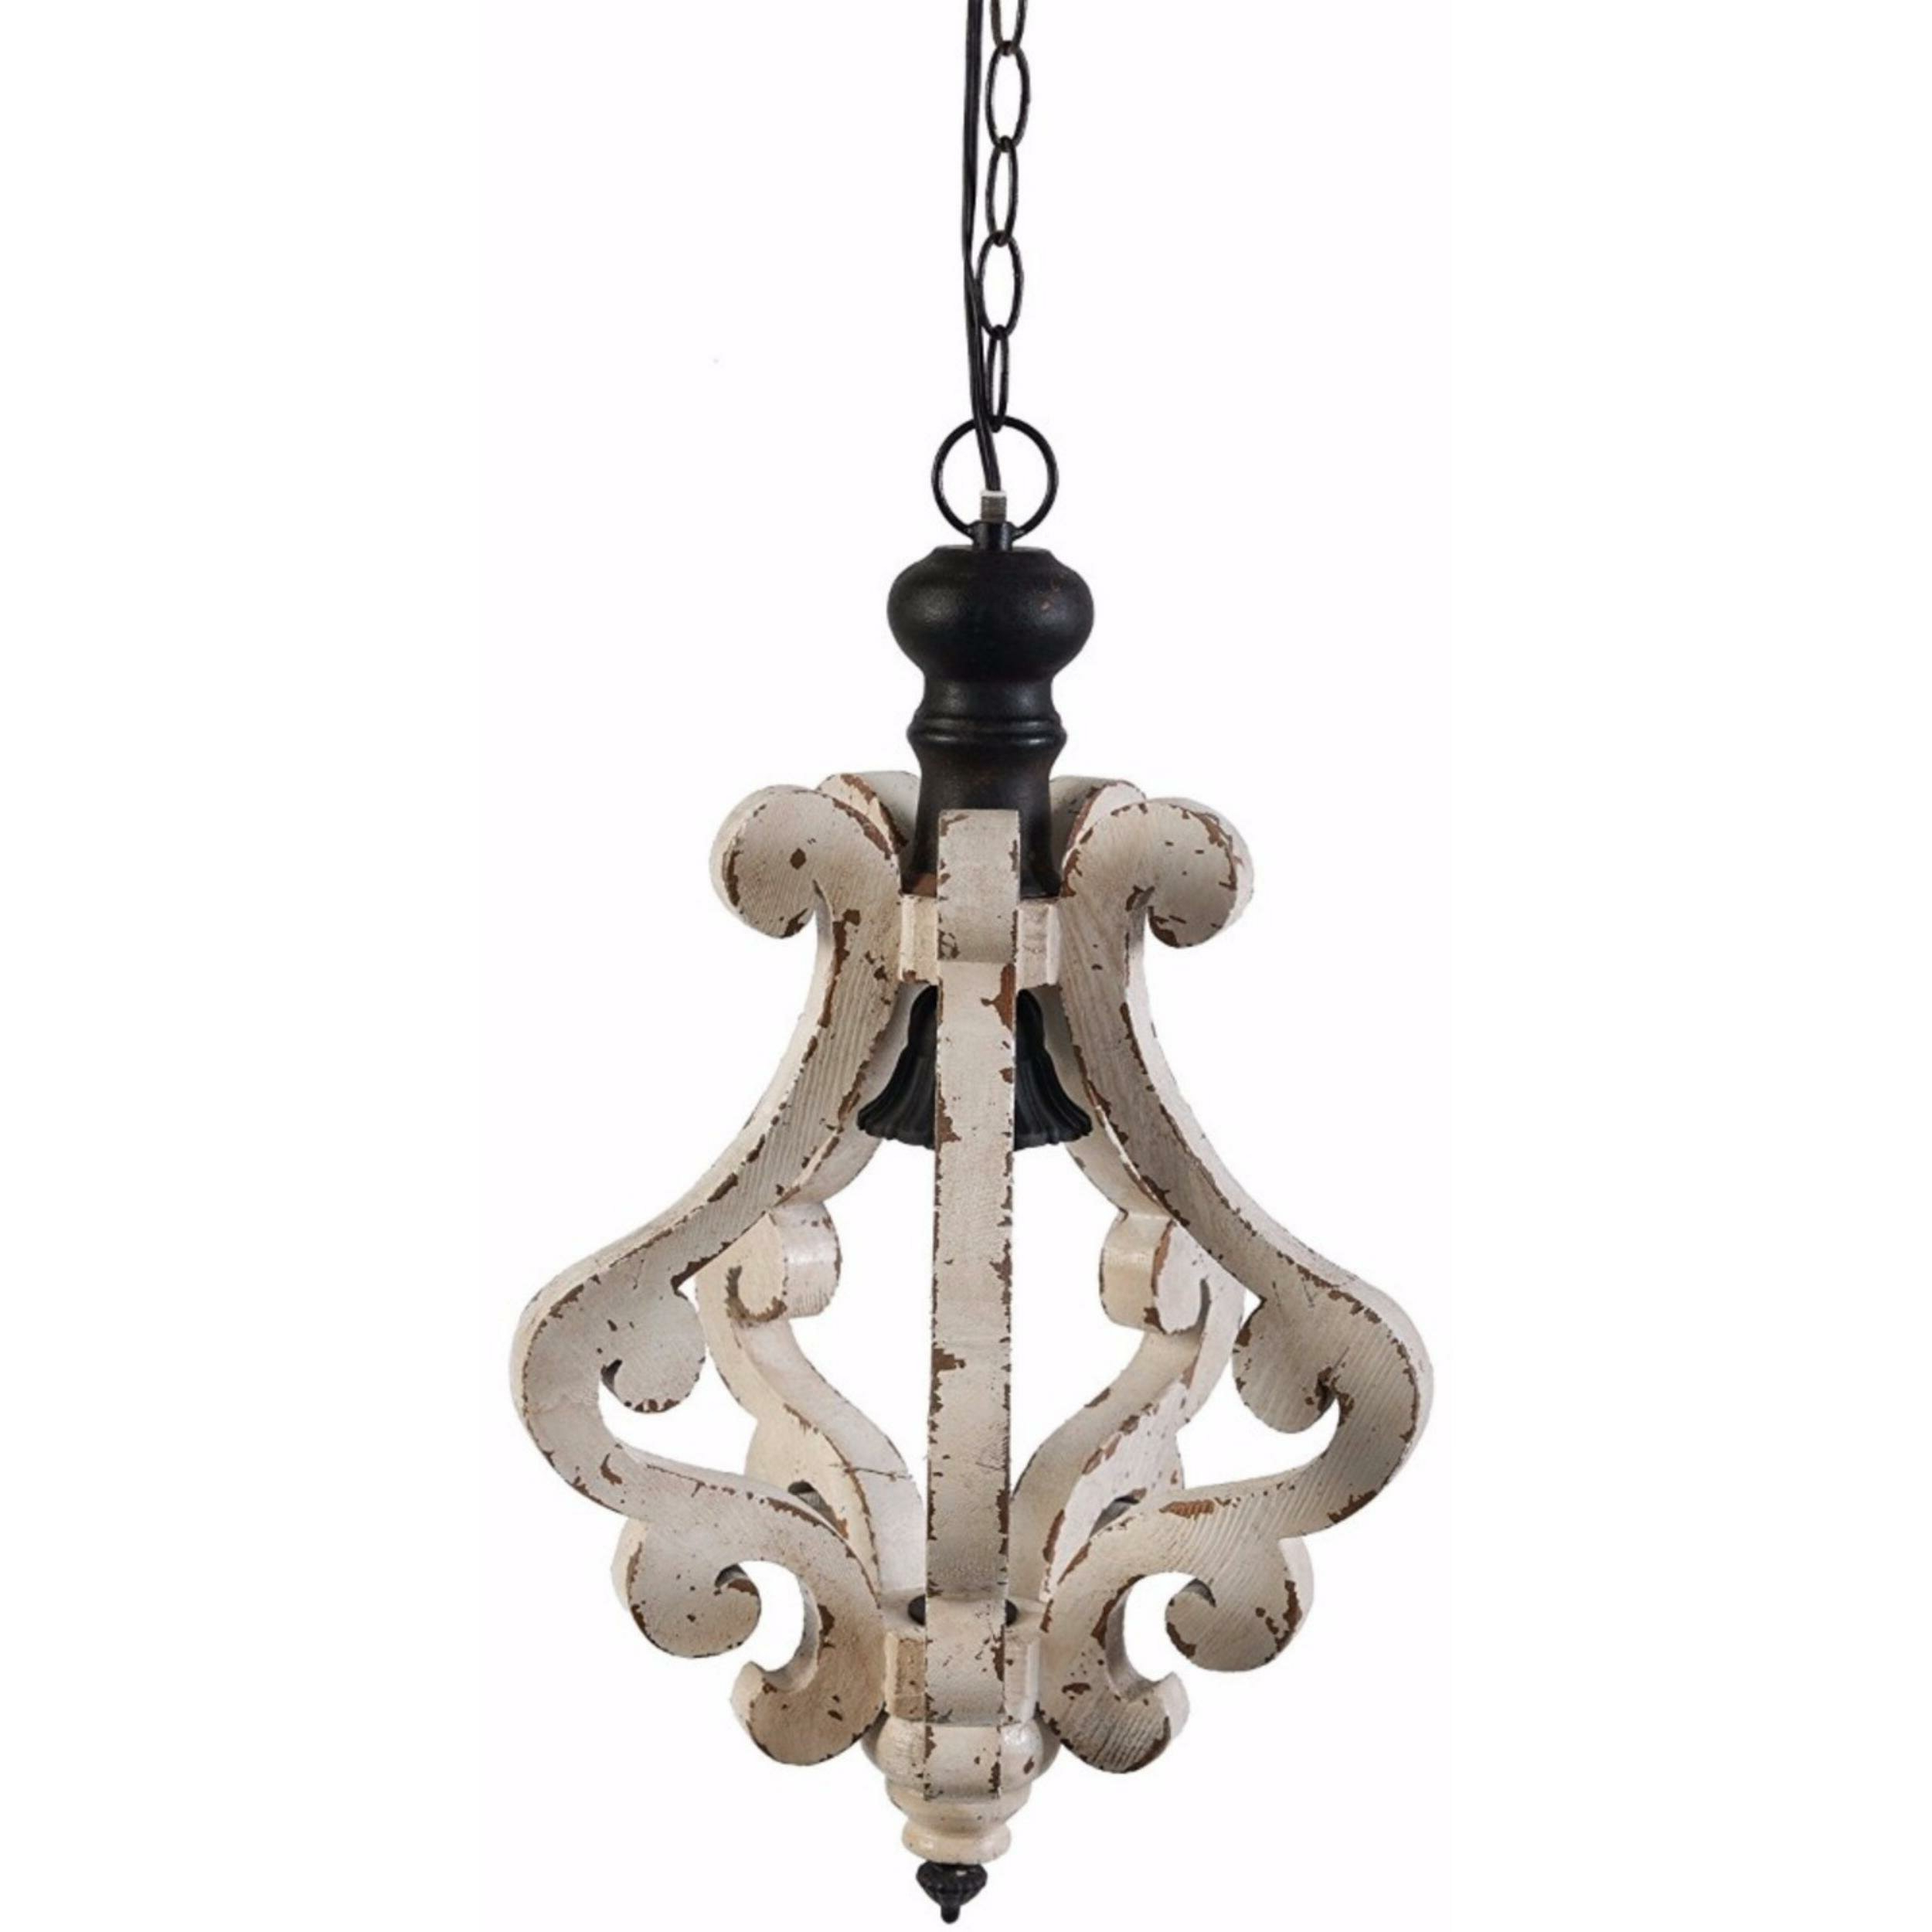 Grullon Scroll 1 Light Single Bell Pendants Throughout Best And Newest Latonia Wooden 1 Light Single Geometric Pendant (View 18 of 25)